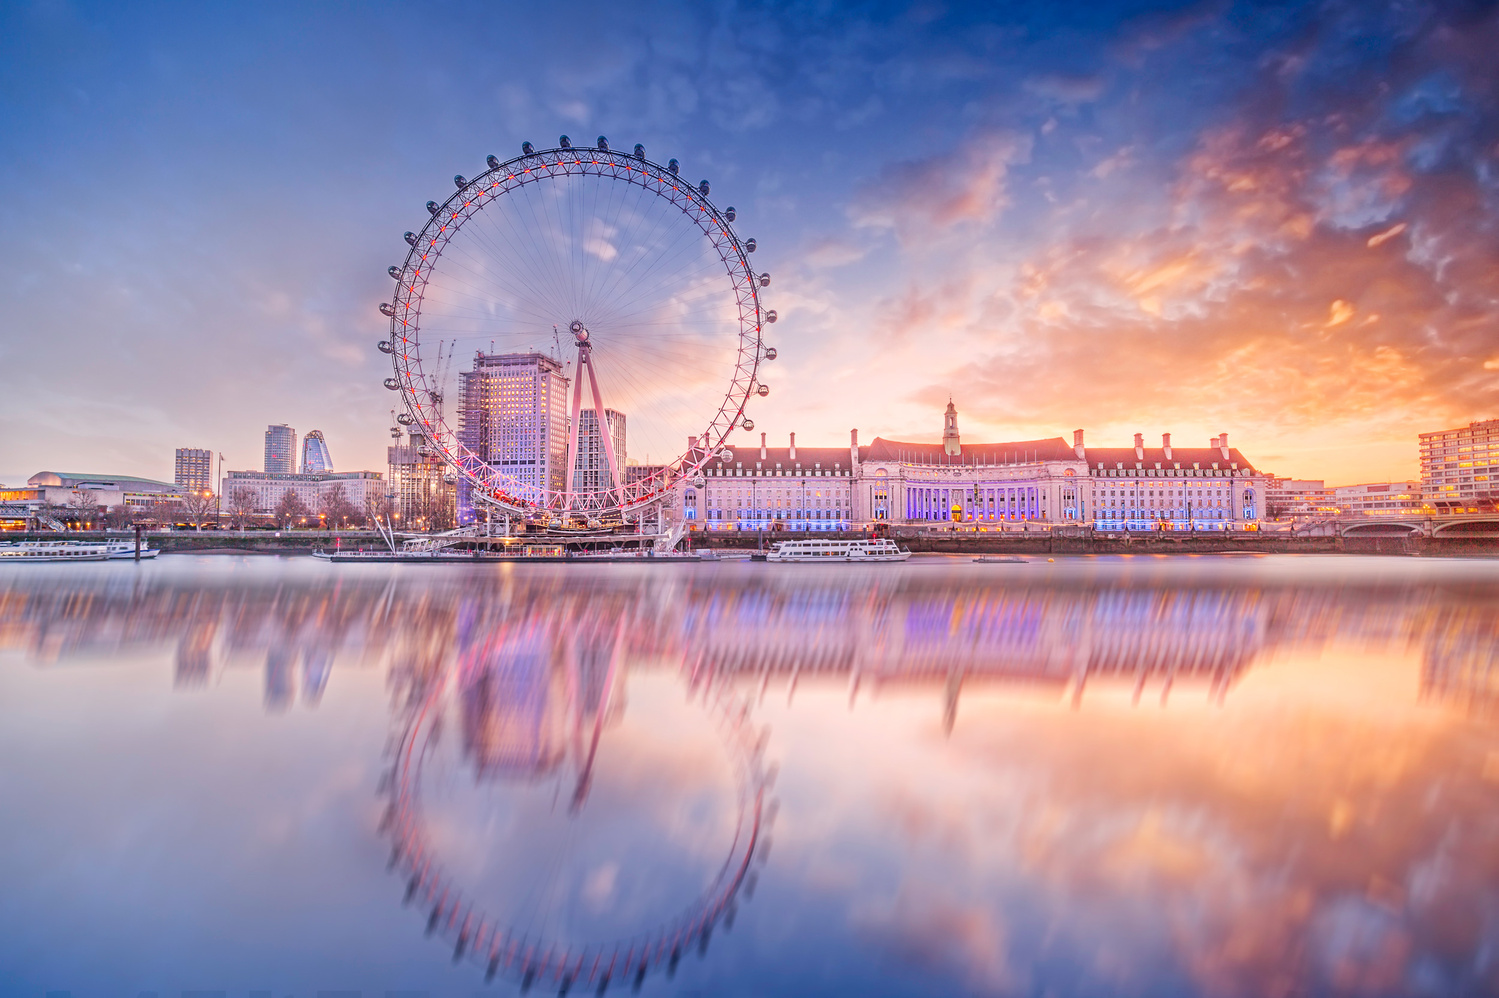 London Eye by Antoine Buchet